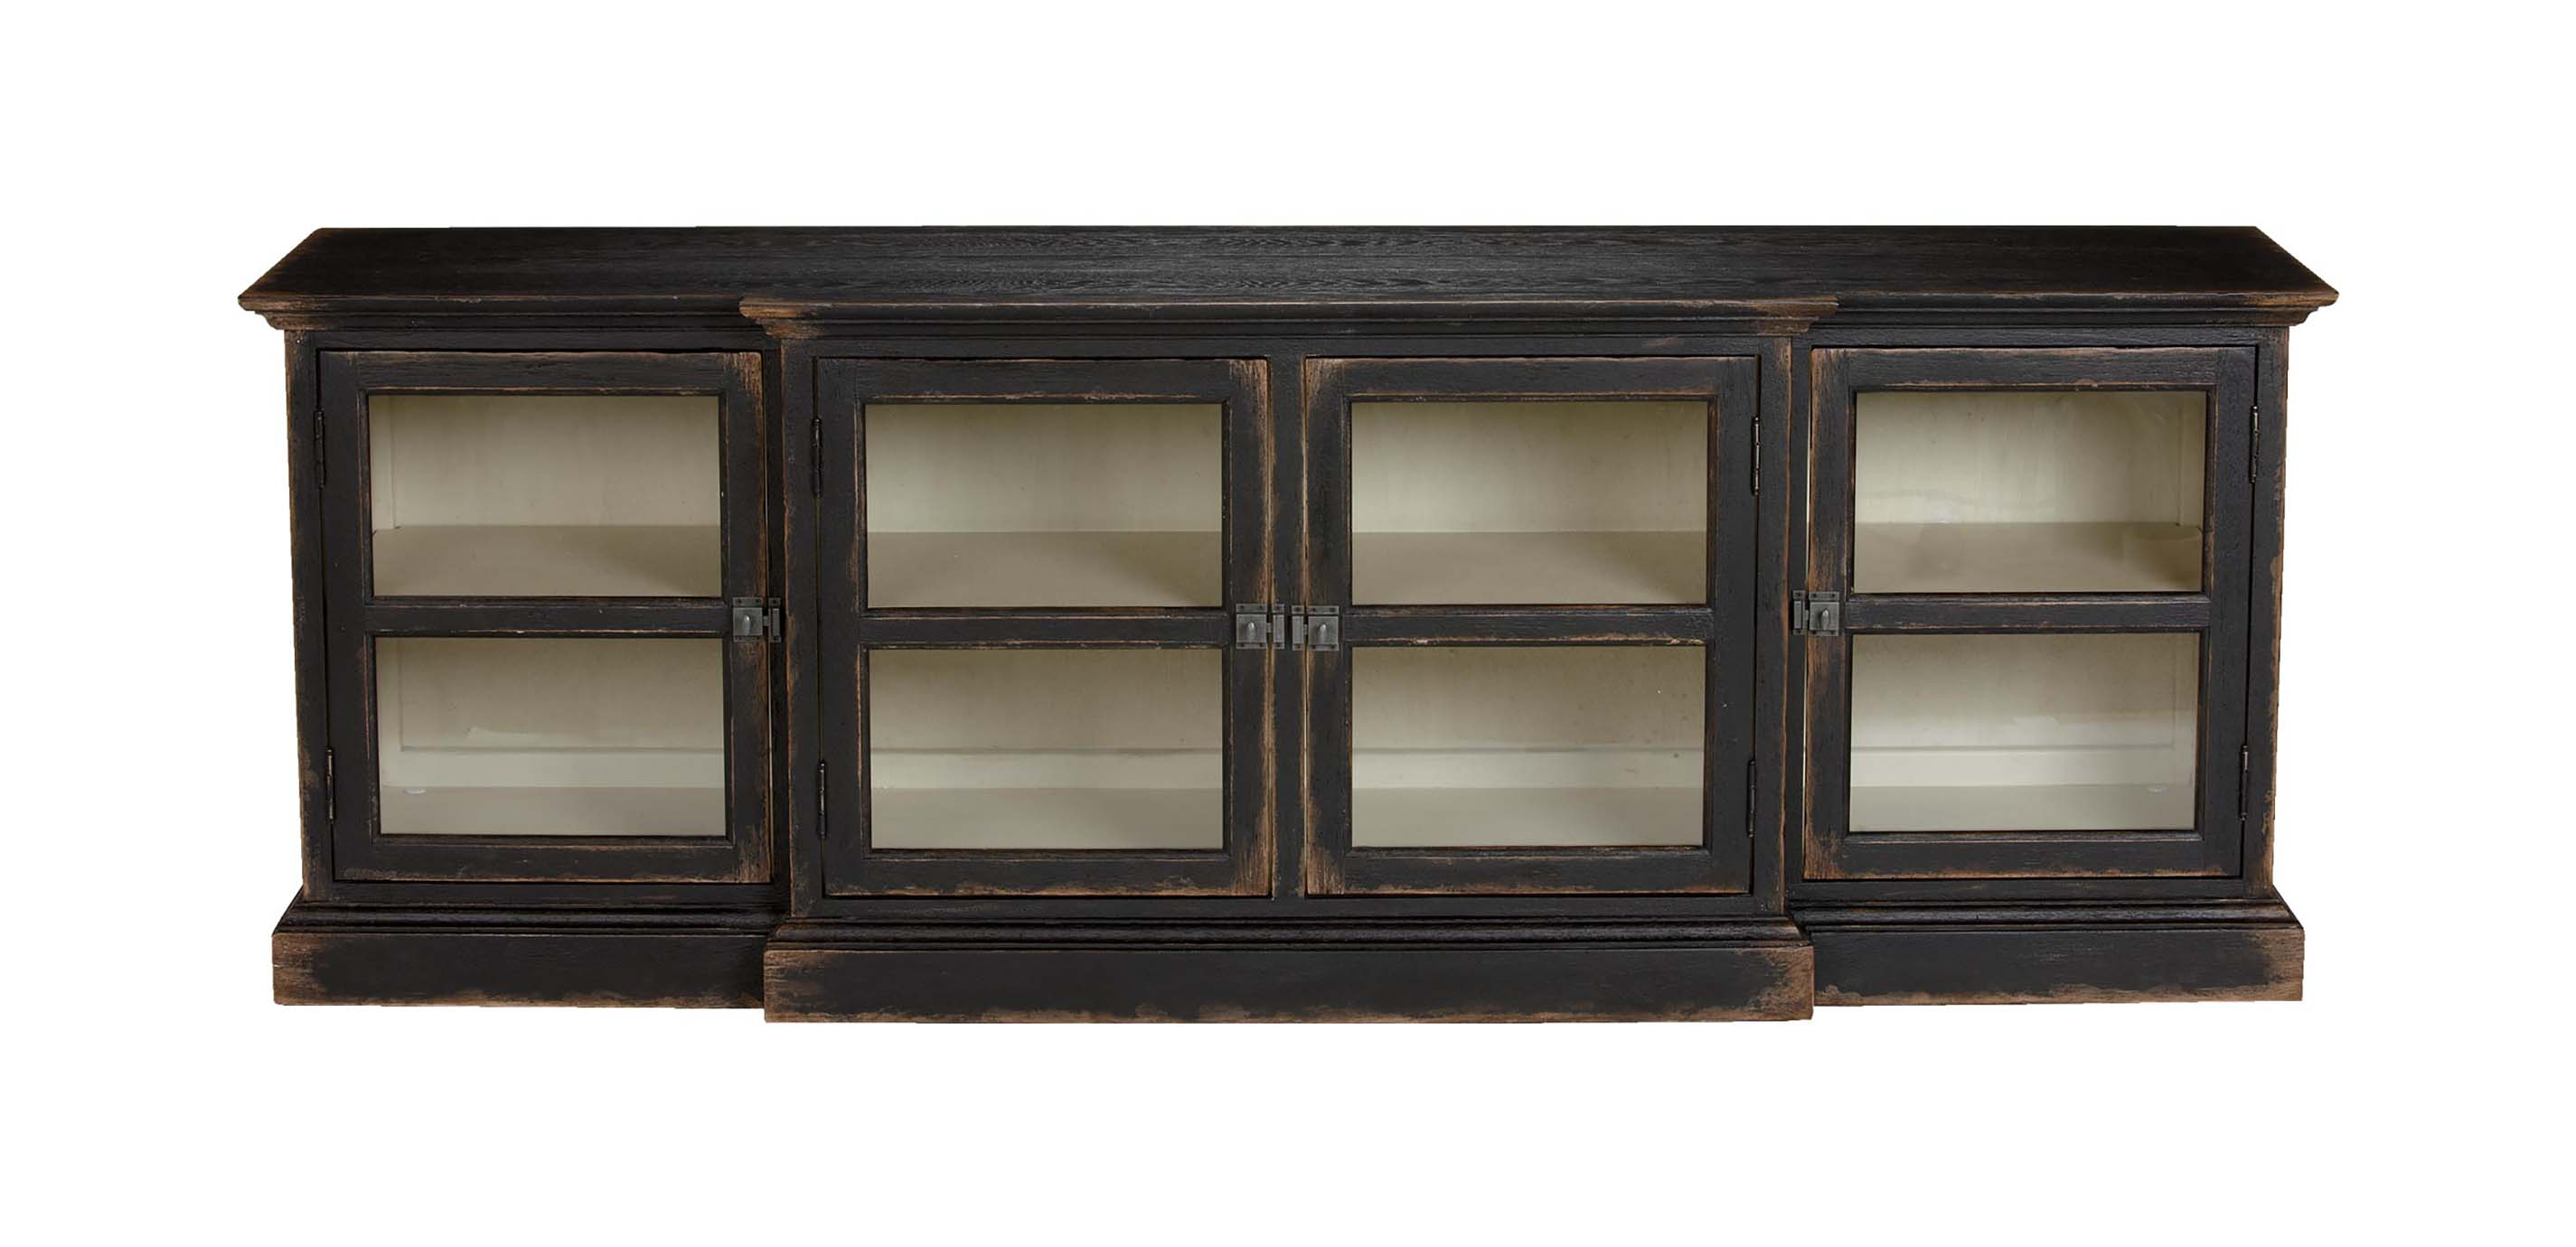 Farragut Media Cabinet Rustic Black With White Interior